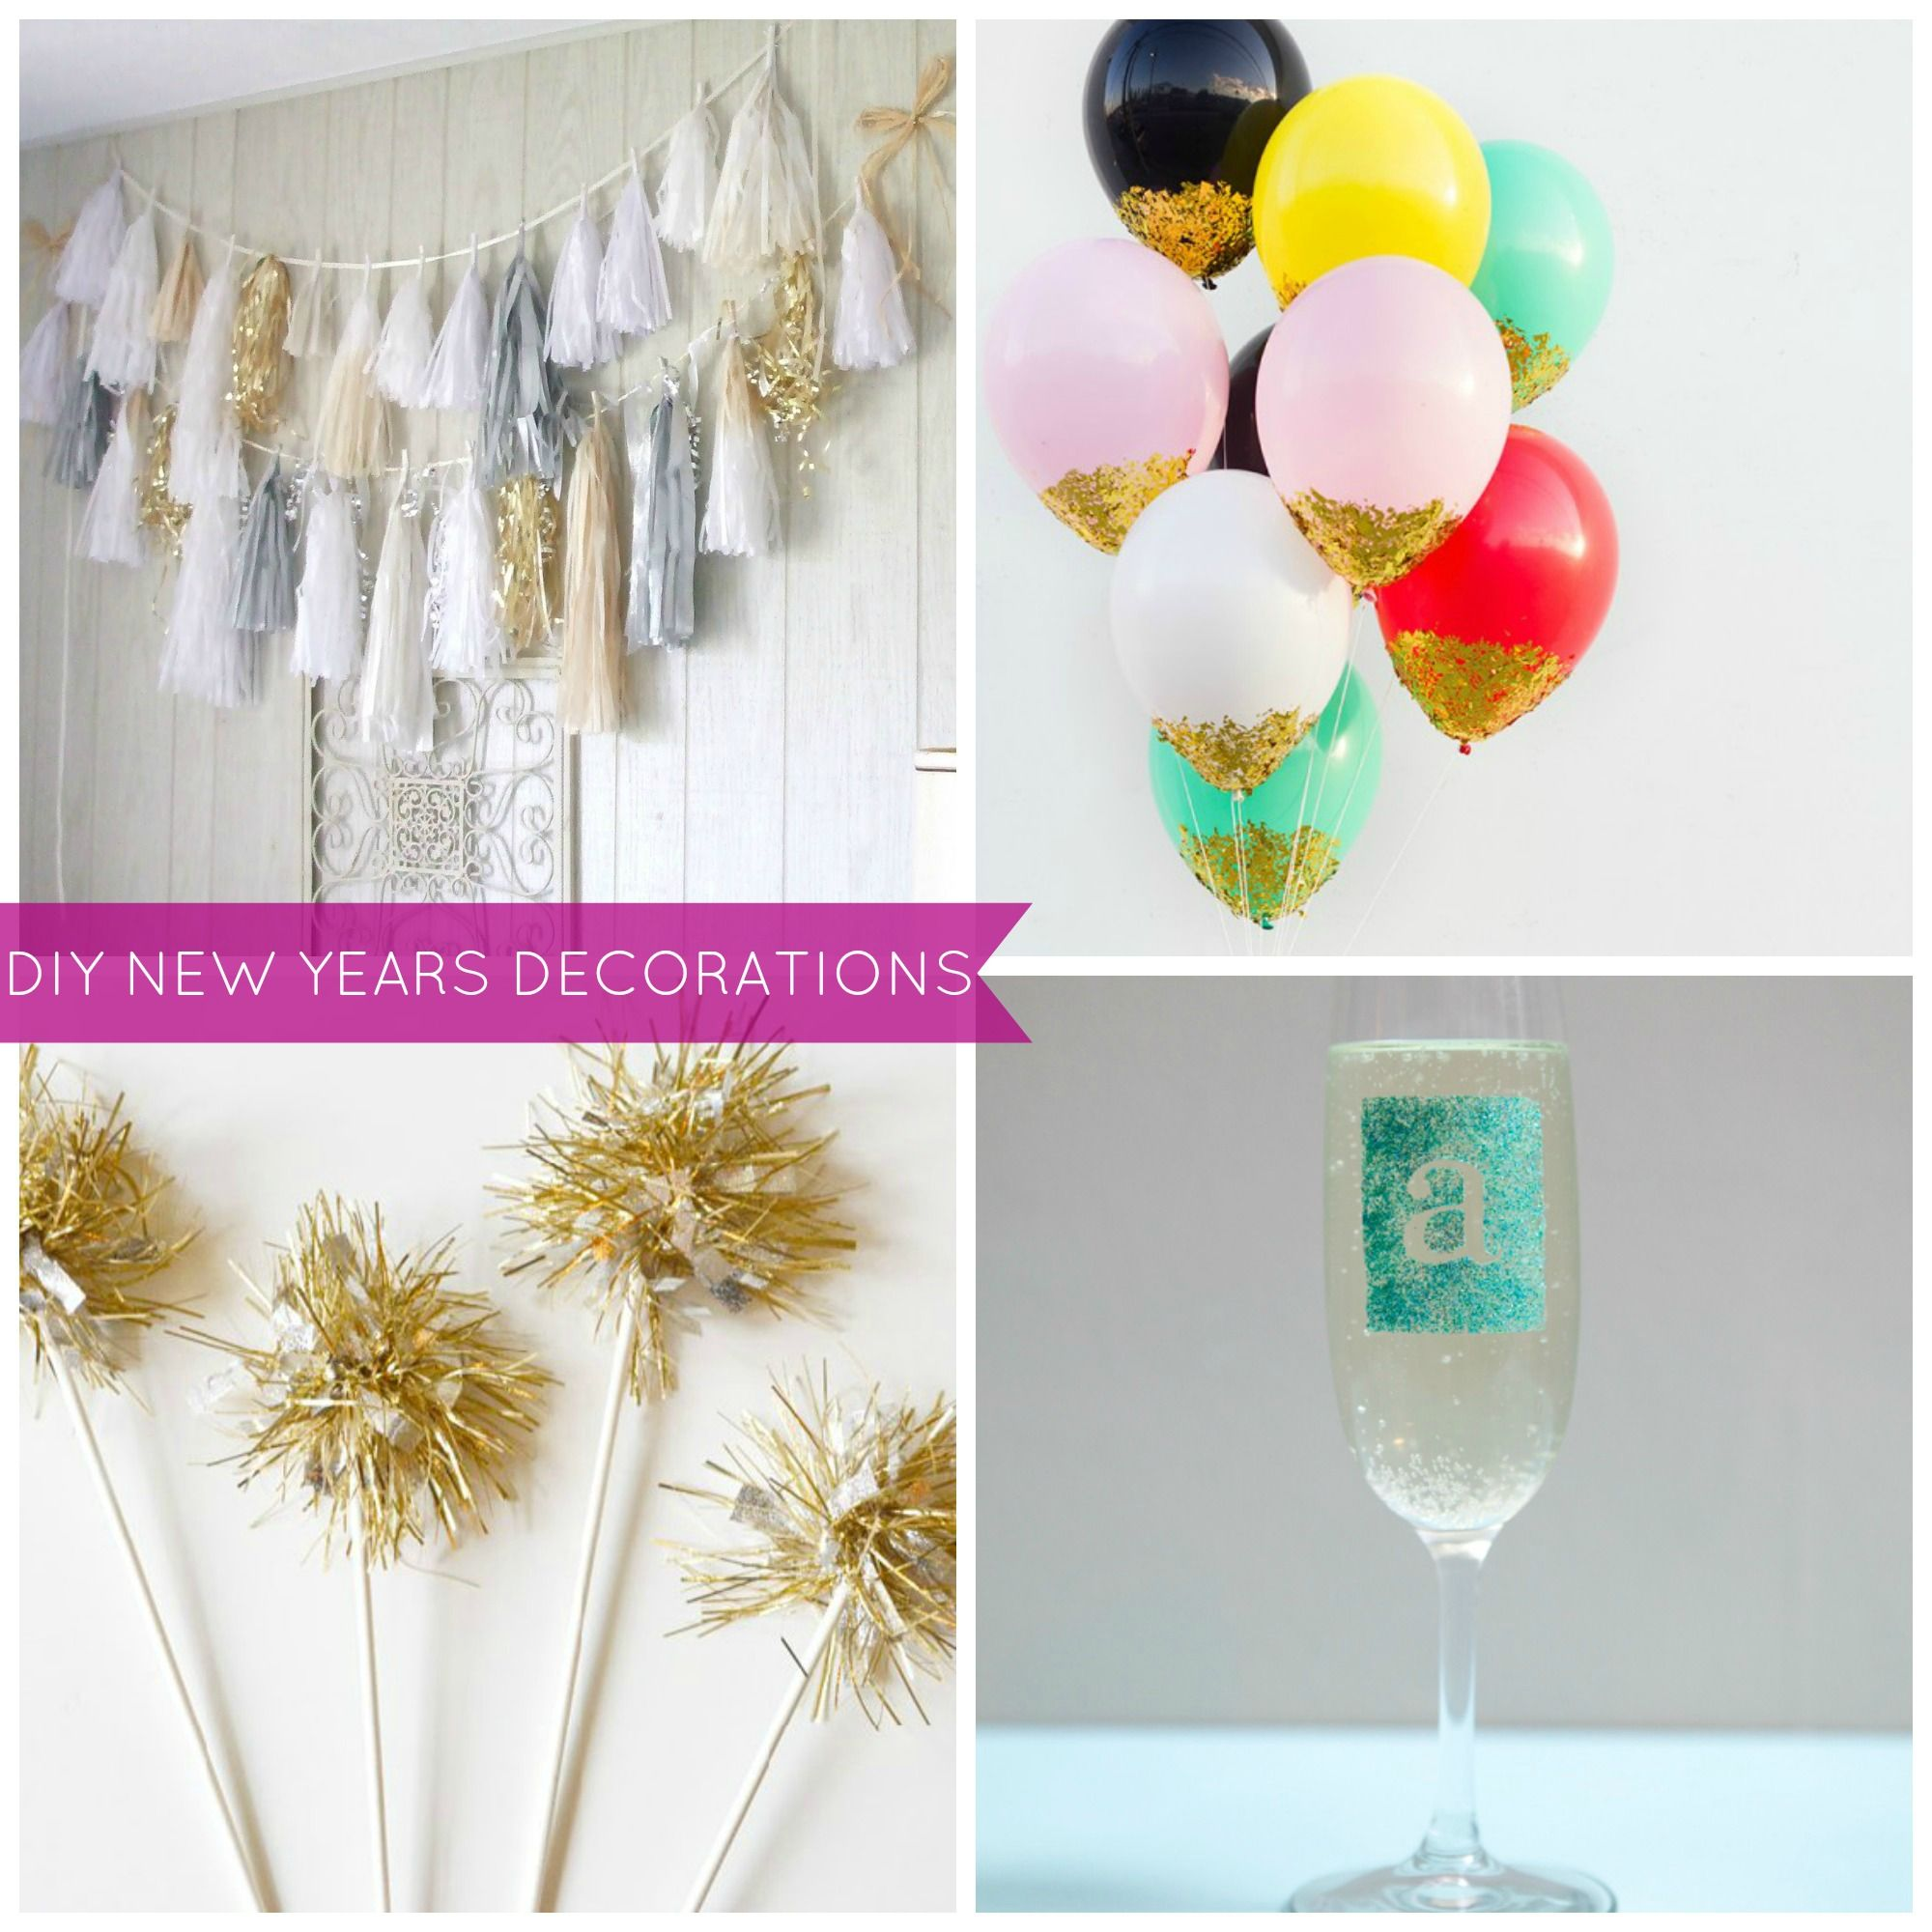 Few DIY ideas to decorate your home for New Year ...